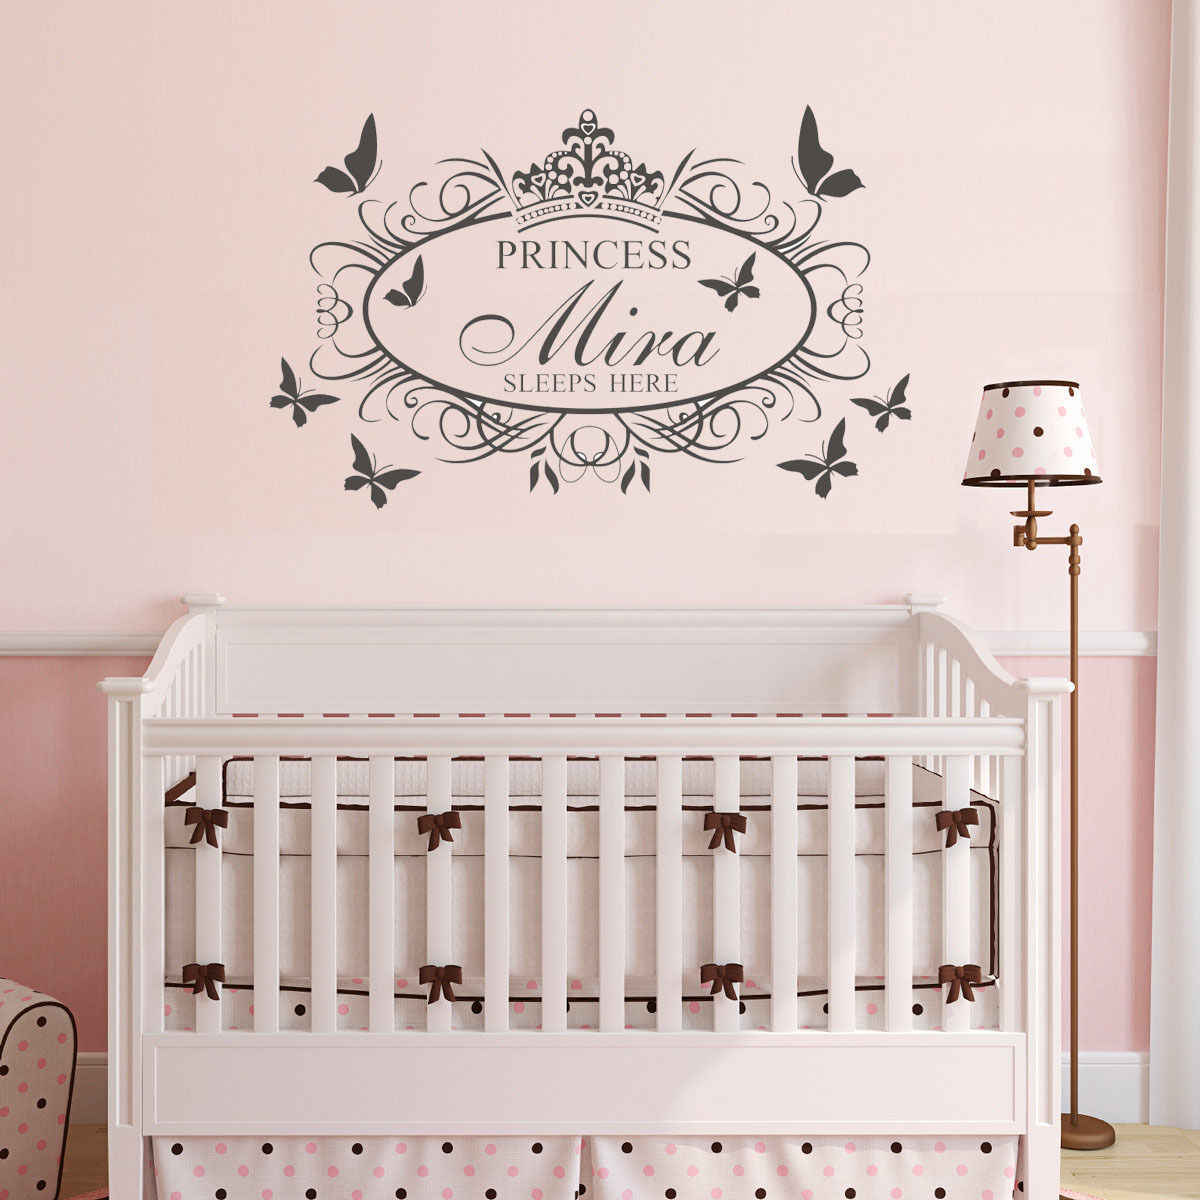 C187 wall stickers custom name sleep crown flower decal for kids c187 wall stickers custom name sleep crown flower decal for kids room decor removable vinyl decor for nursery in wall stickers from home garden on izmirmasajfo